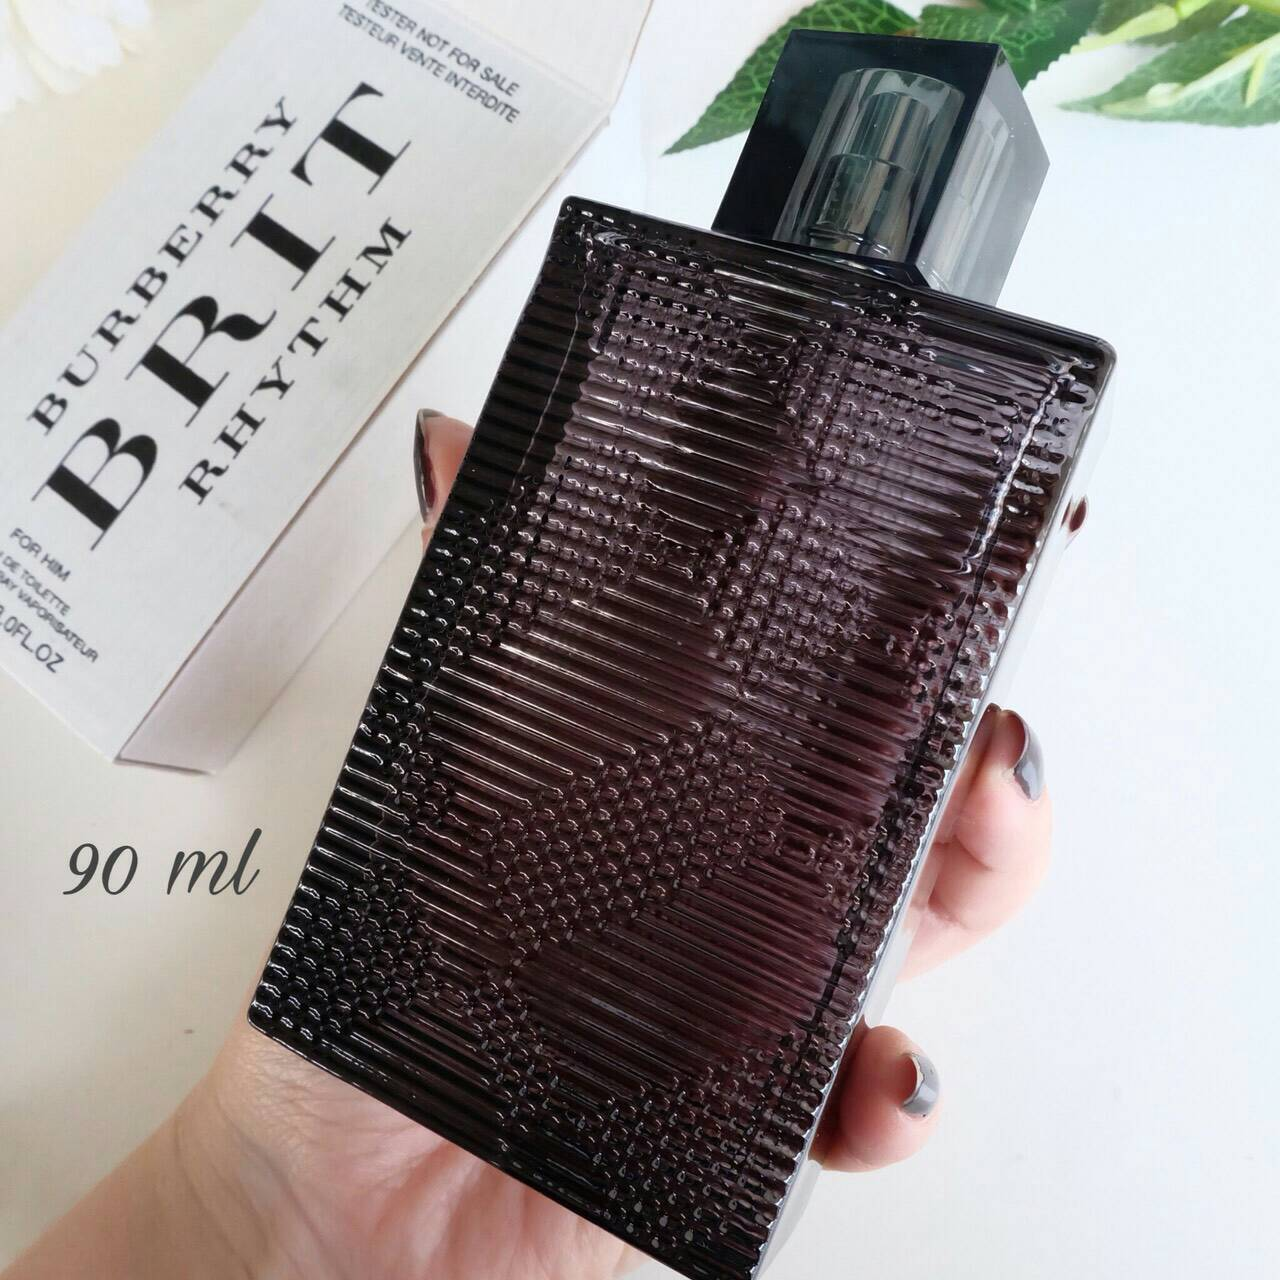 Burberry Brit Rhythm For Him Perfume Counter brand แท้ ตัว Tester น้ำหอม Tester 90 ML